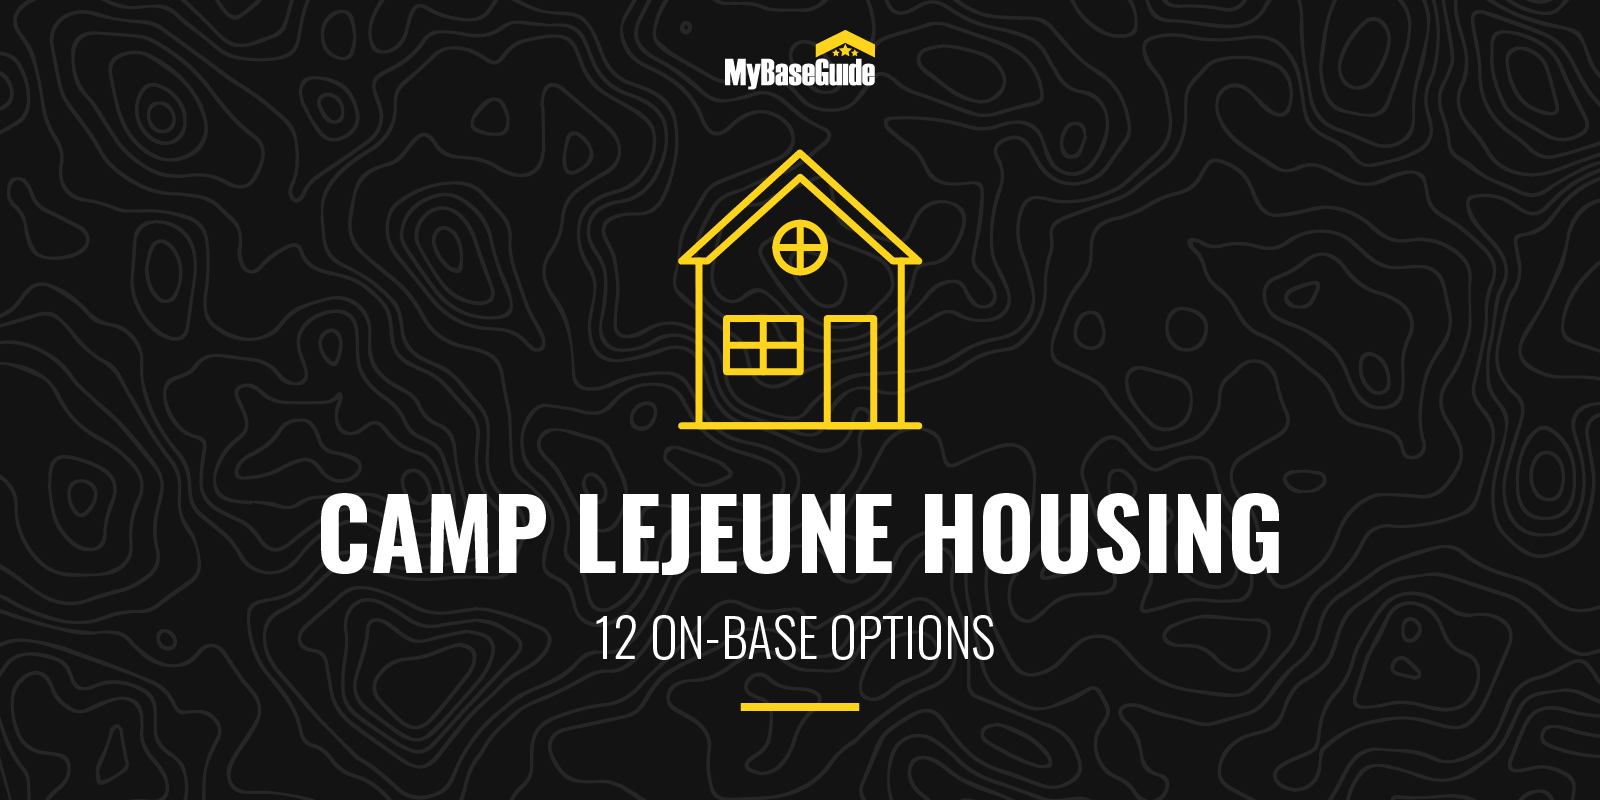 Camp Lejeune Housing